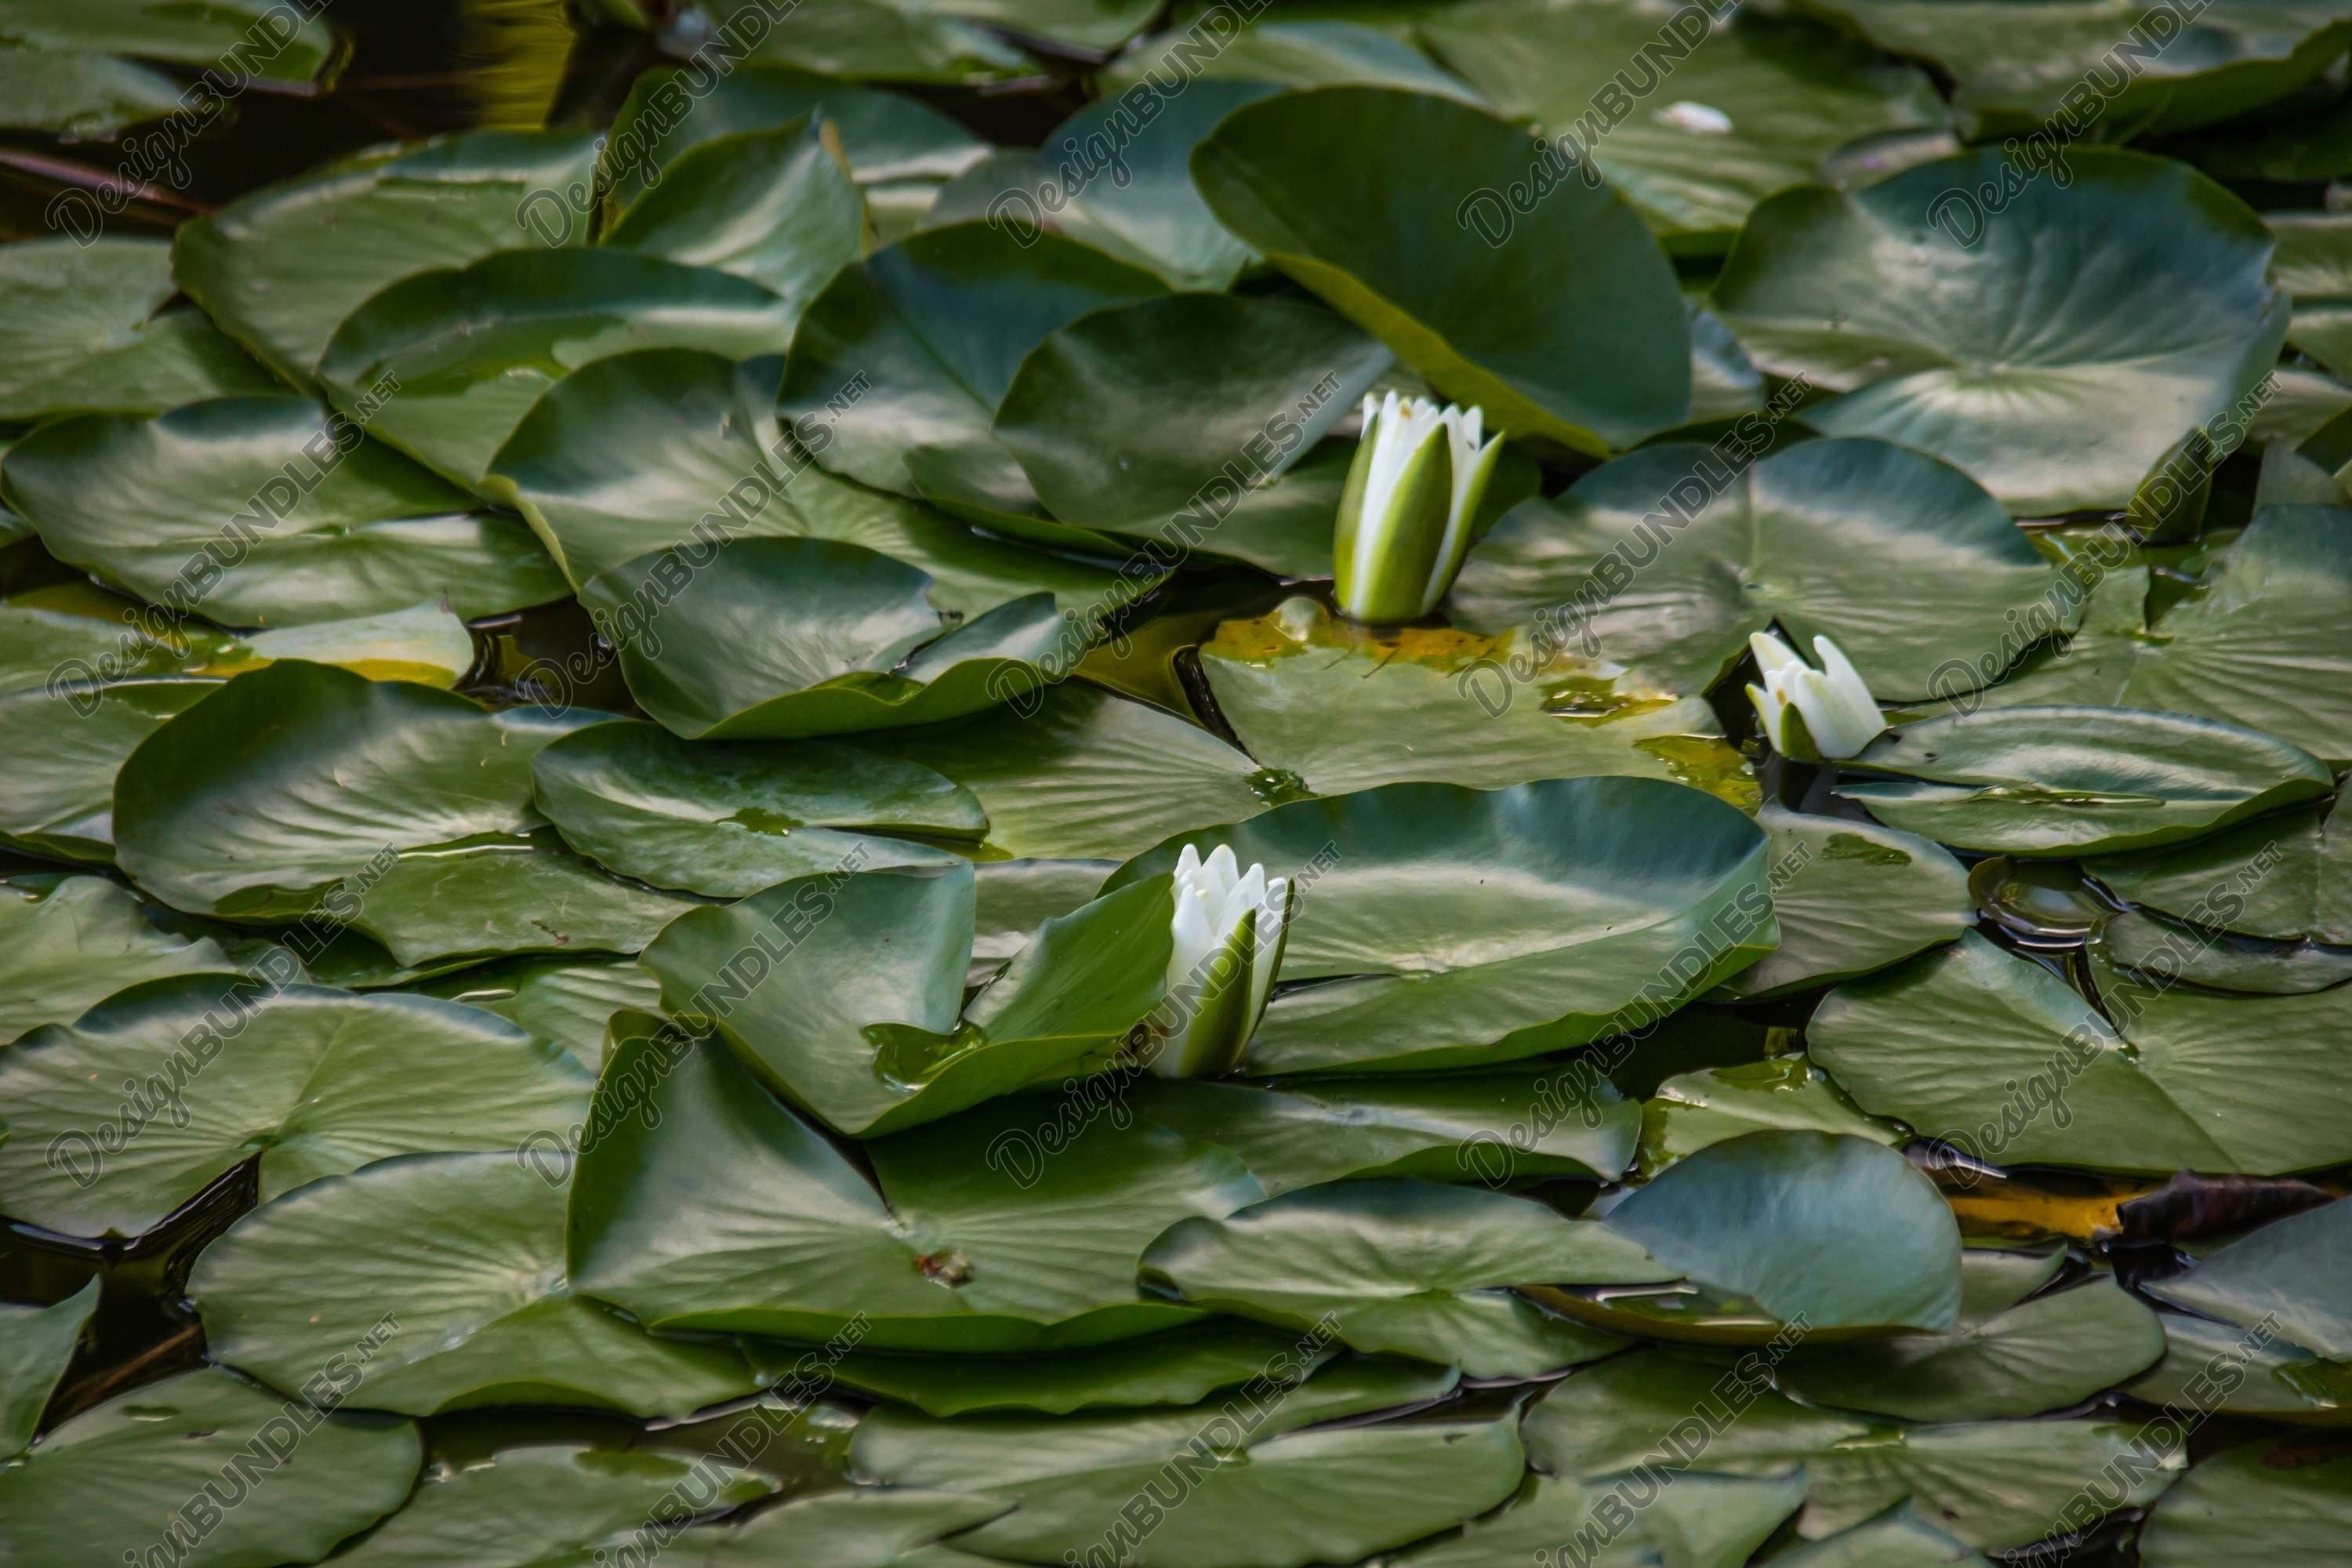 Stock Photo - Water lily example image 1